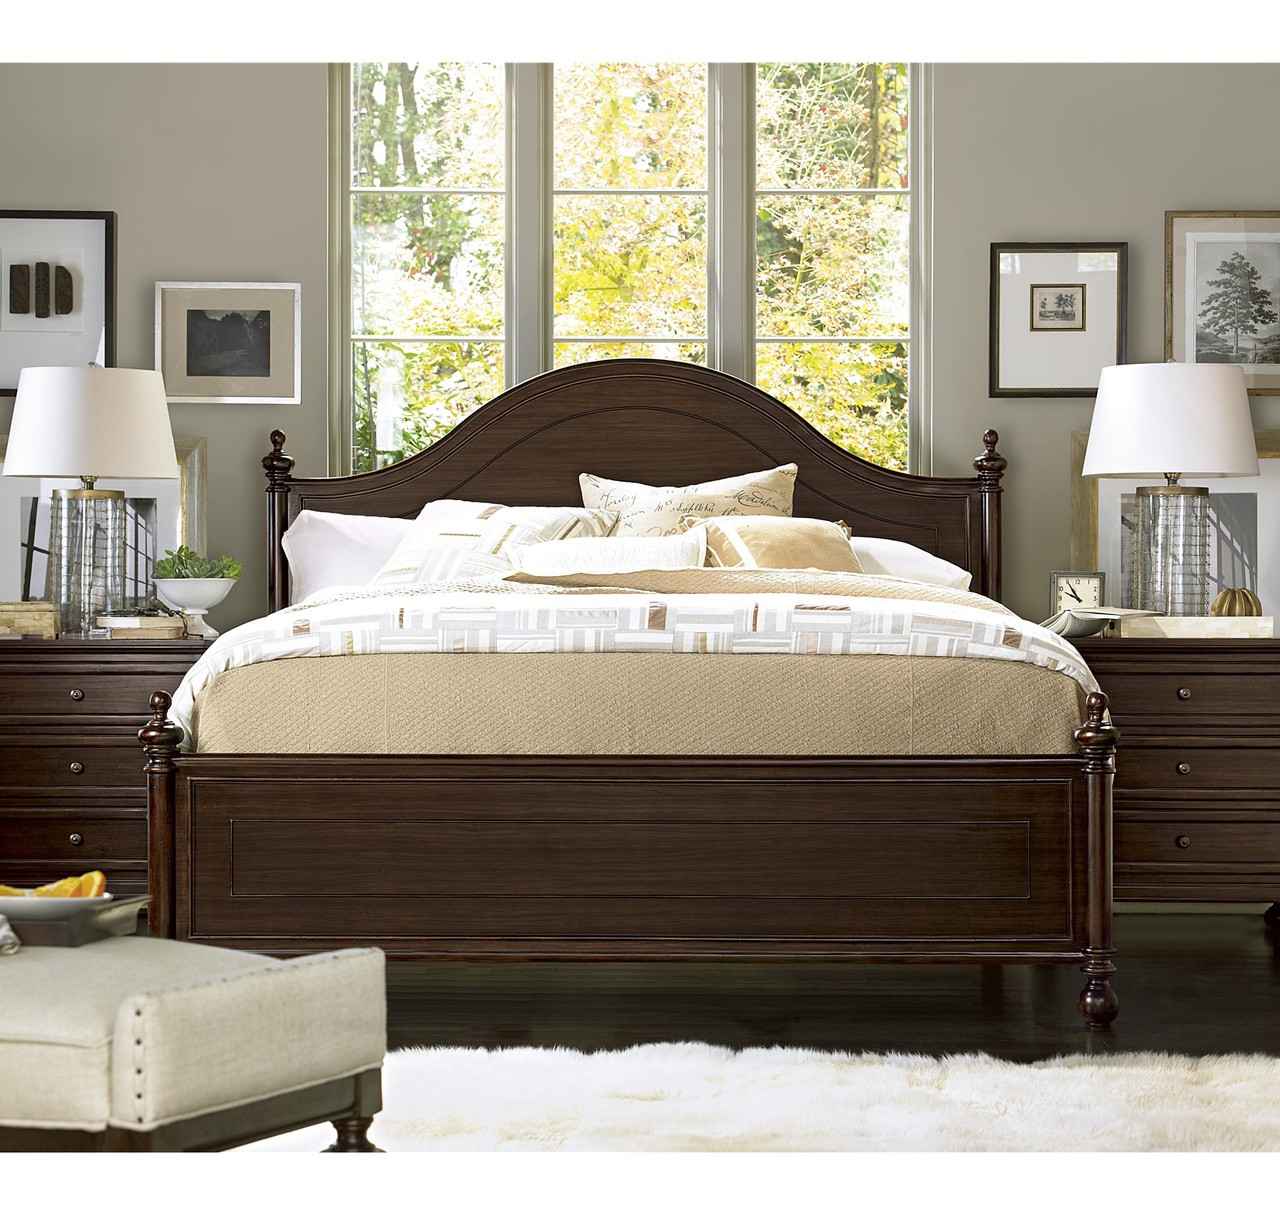 Proximity Arched Queen Poster Bed Zin Home